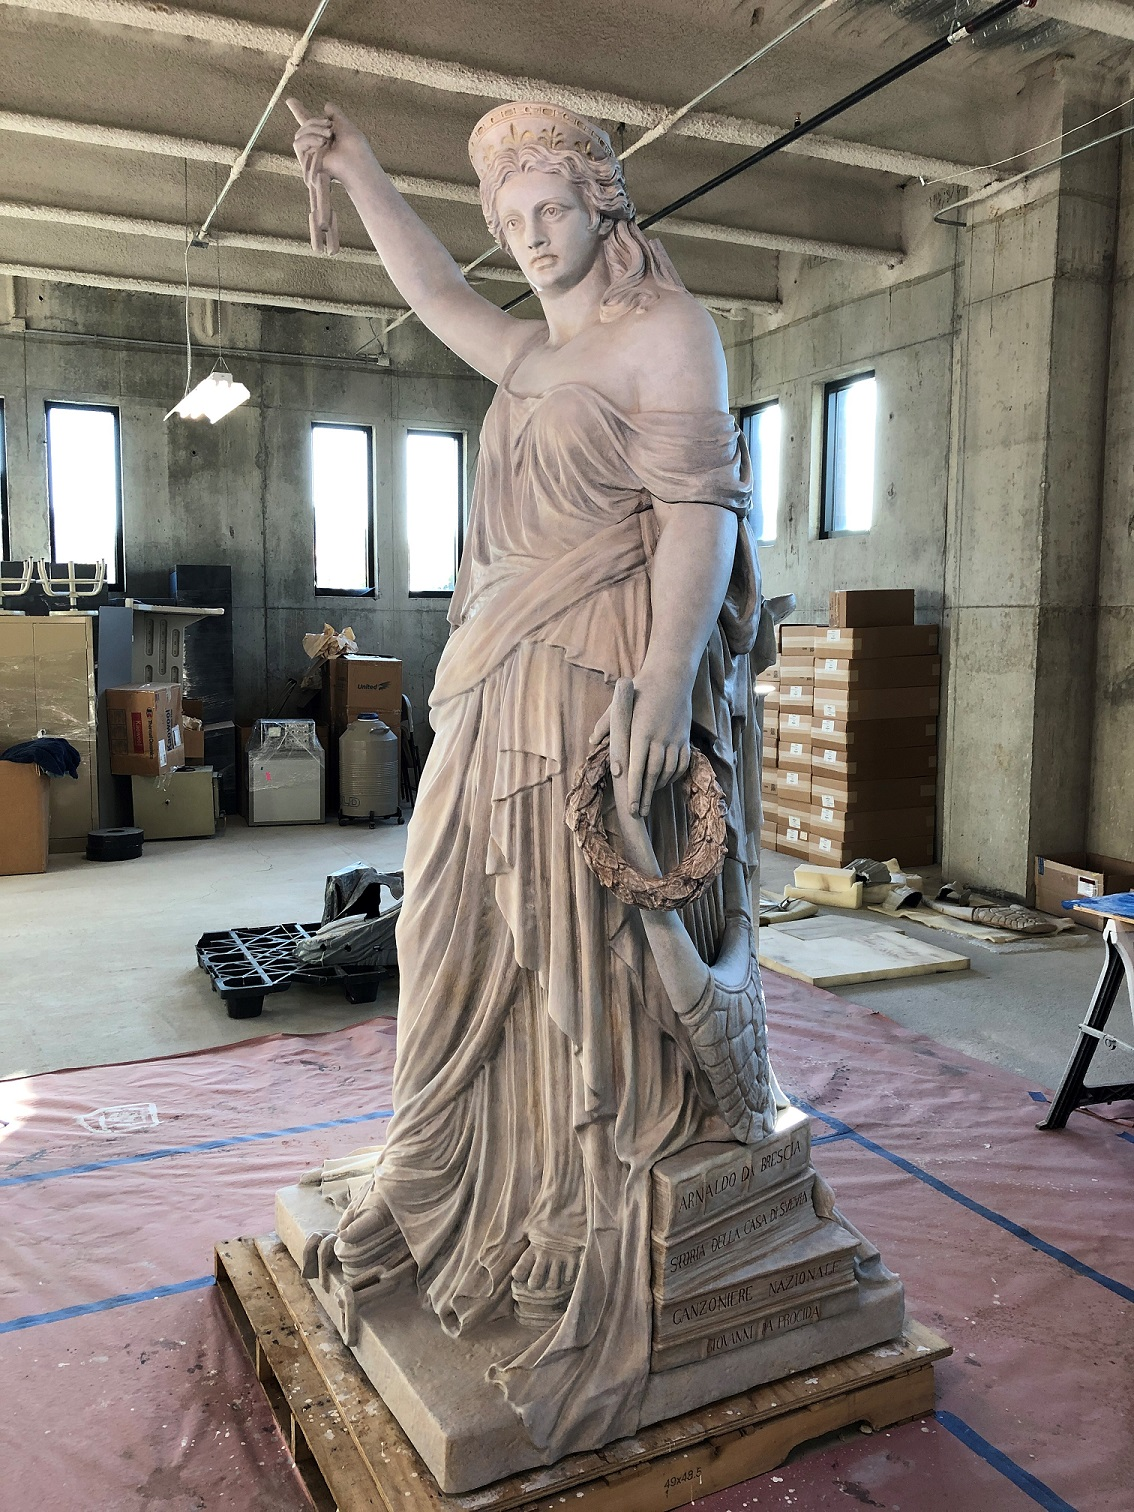 The 3D-printed replica of the Liberty of Poetry statue being created by Kent State University will enable visitors to see the Italian predecessor to the U.S. Statue of Liberty located directly across Ellis Island to Liberty Island.